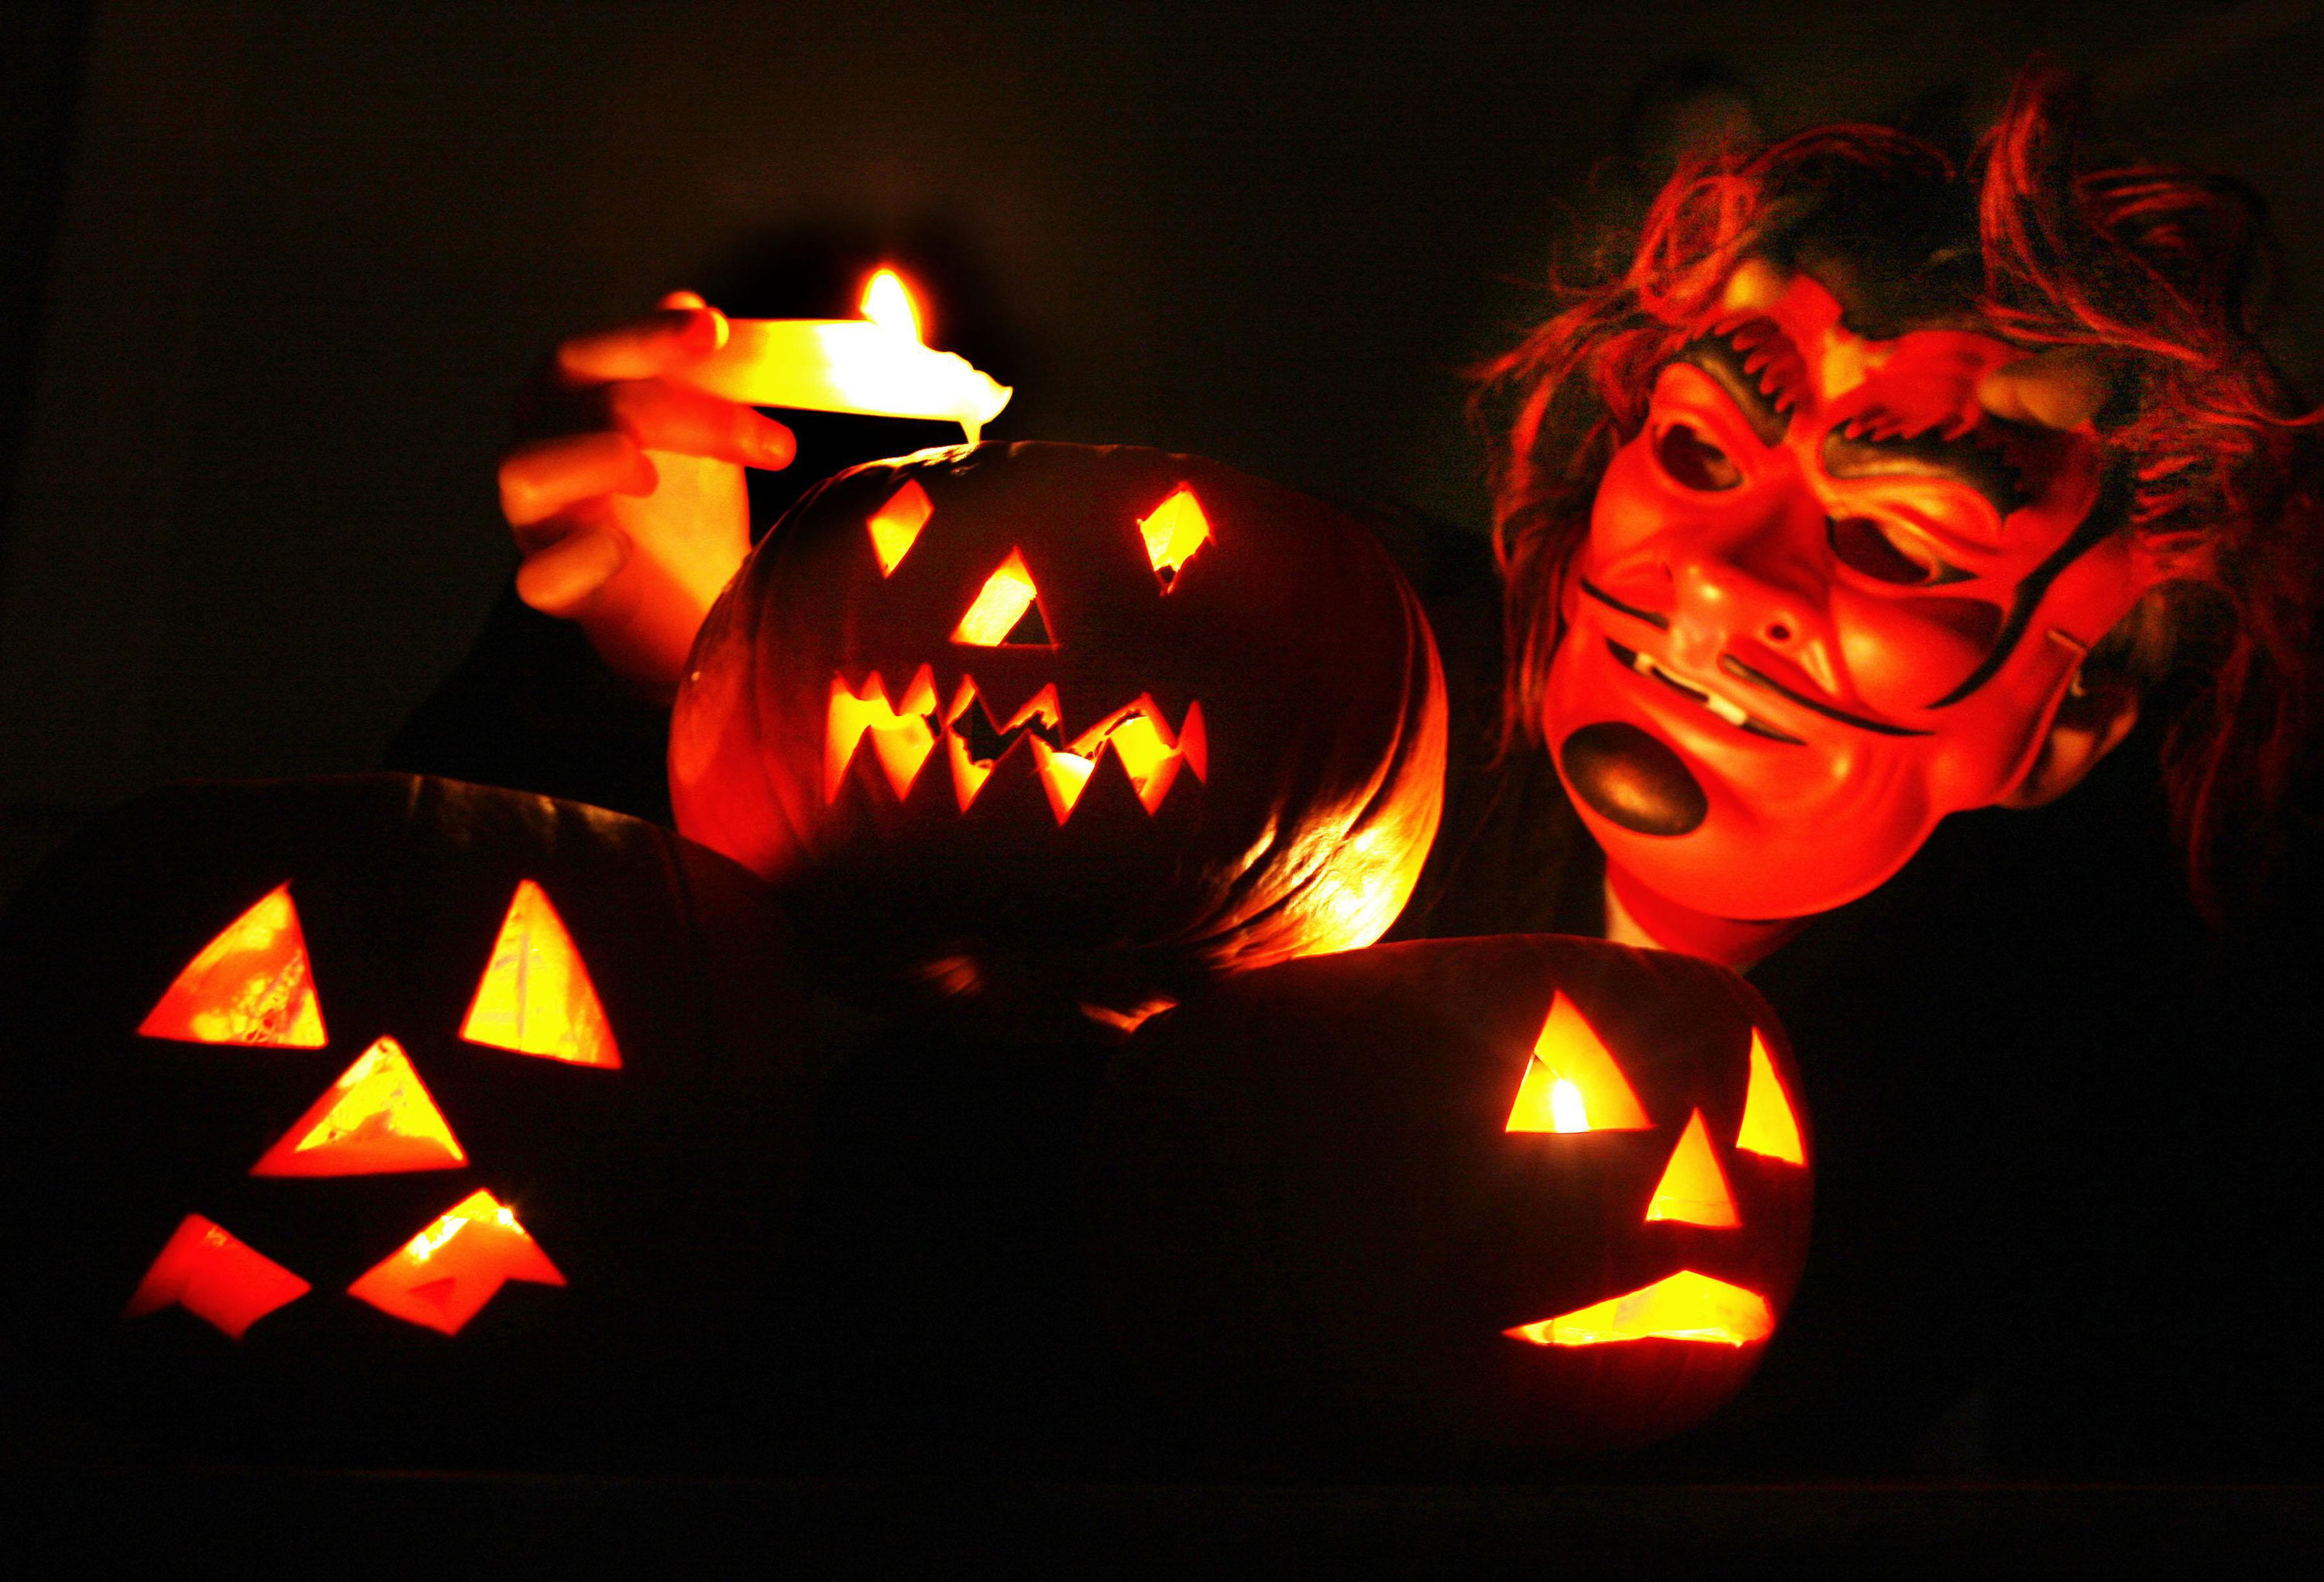 Scotland tells families not to trick-or-treat this Halloween because of Covid-19